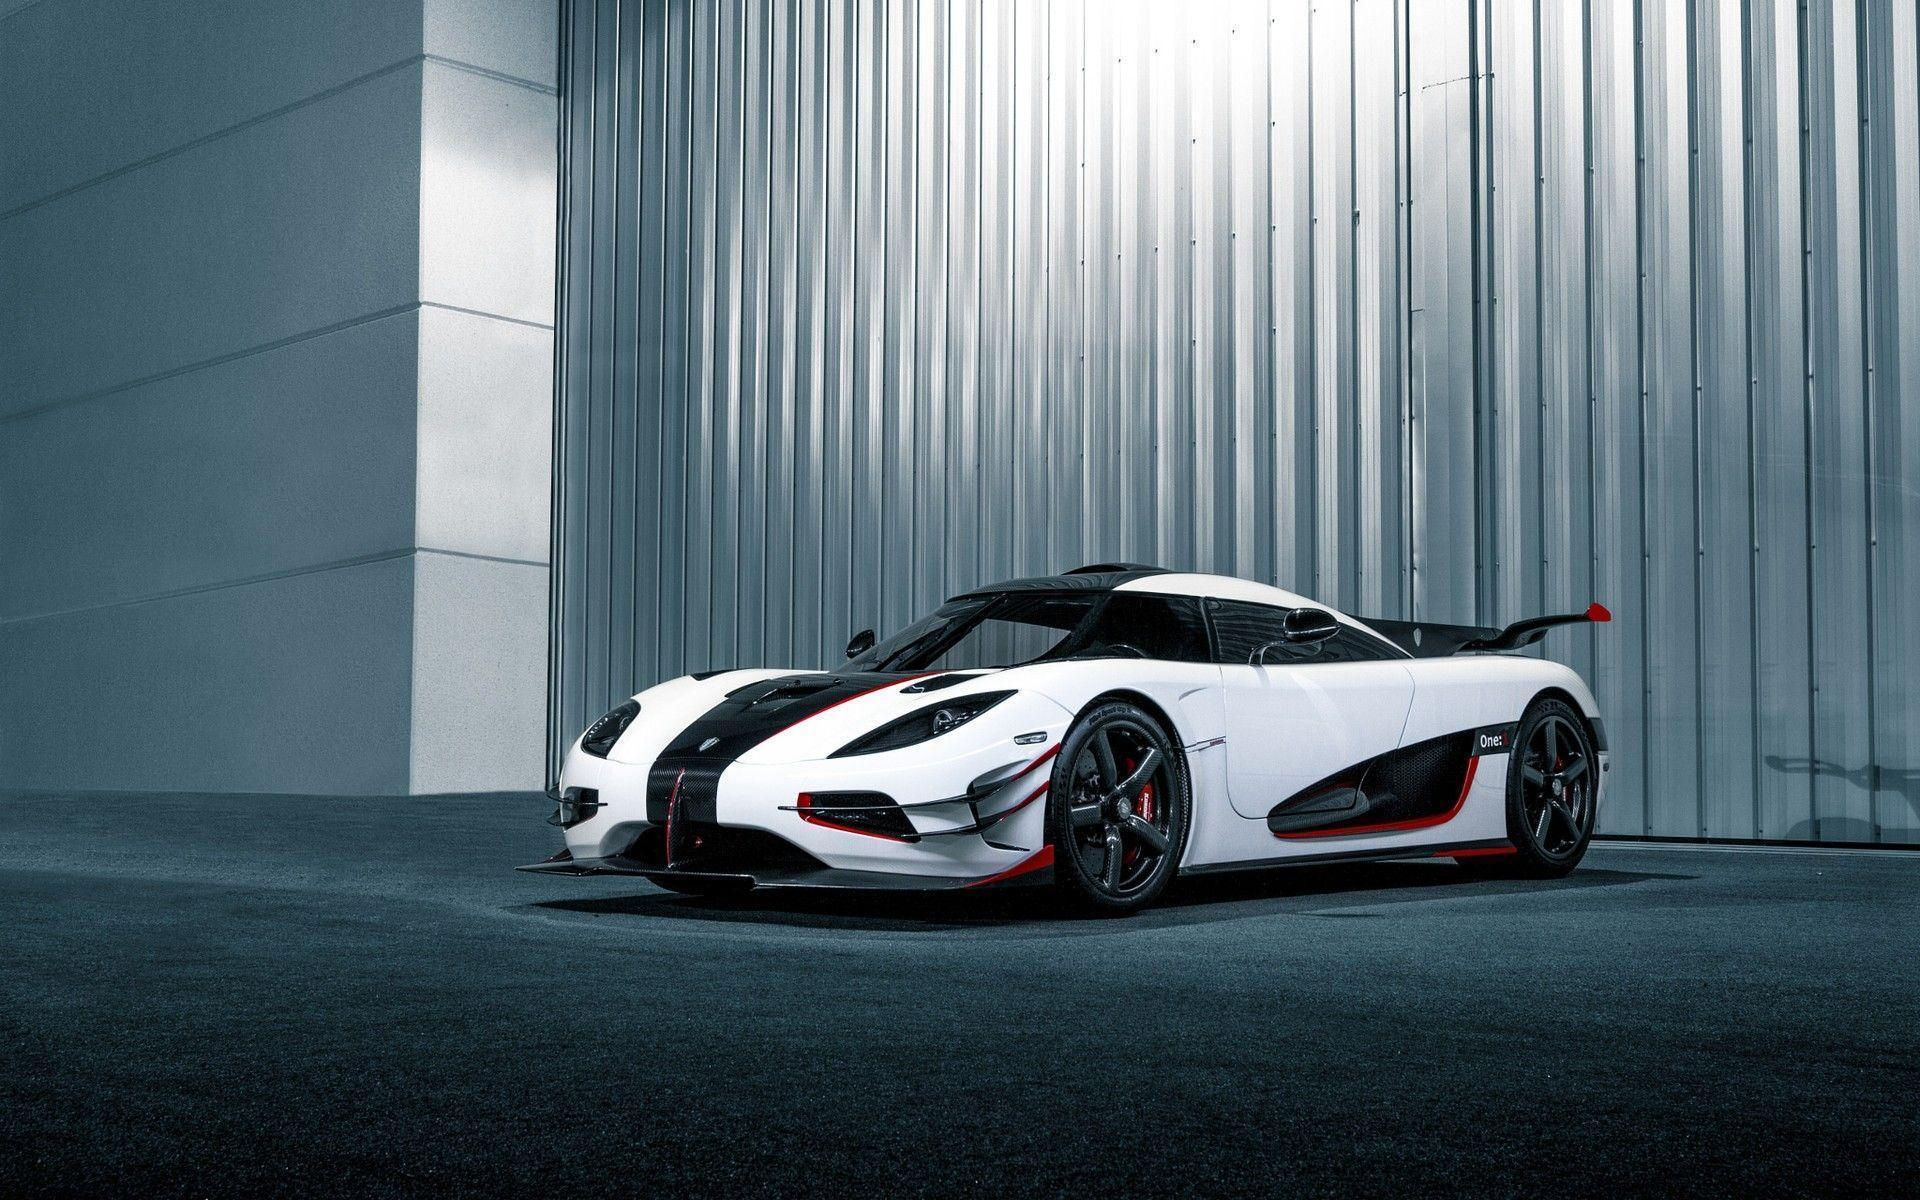 22 Koenigsegg Agera HD Wallpapers | Backgrounds - Wallpaper Abyss